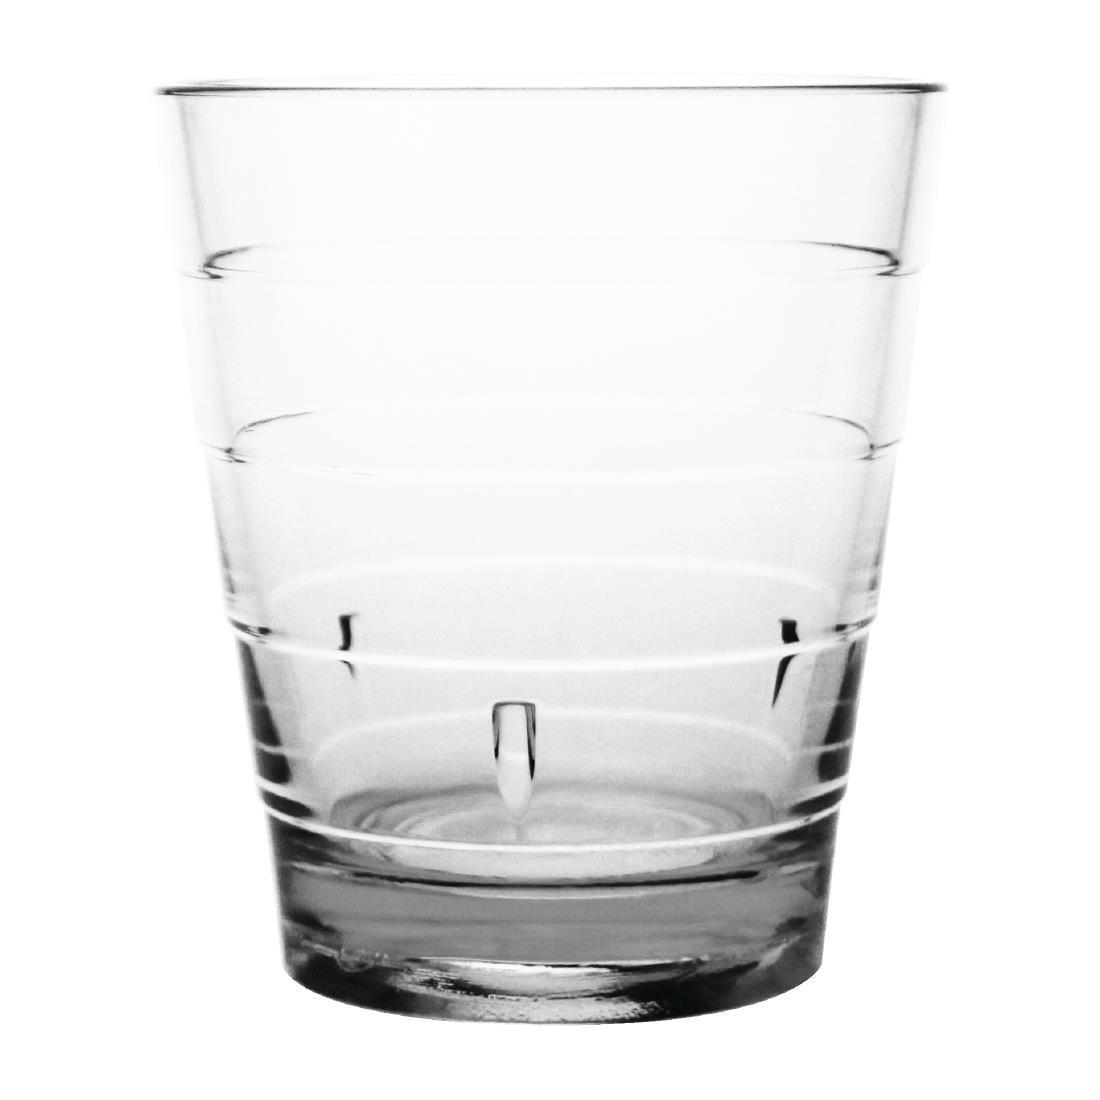 Kristallon Polycarbonate Ringed Tumbler Clear 285ml - Case 6 - DC920